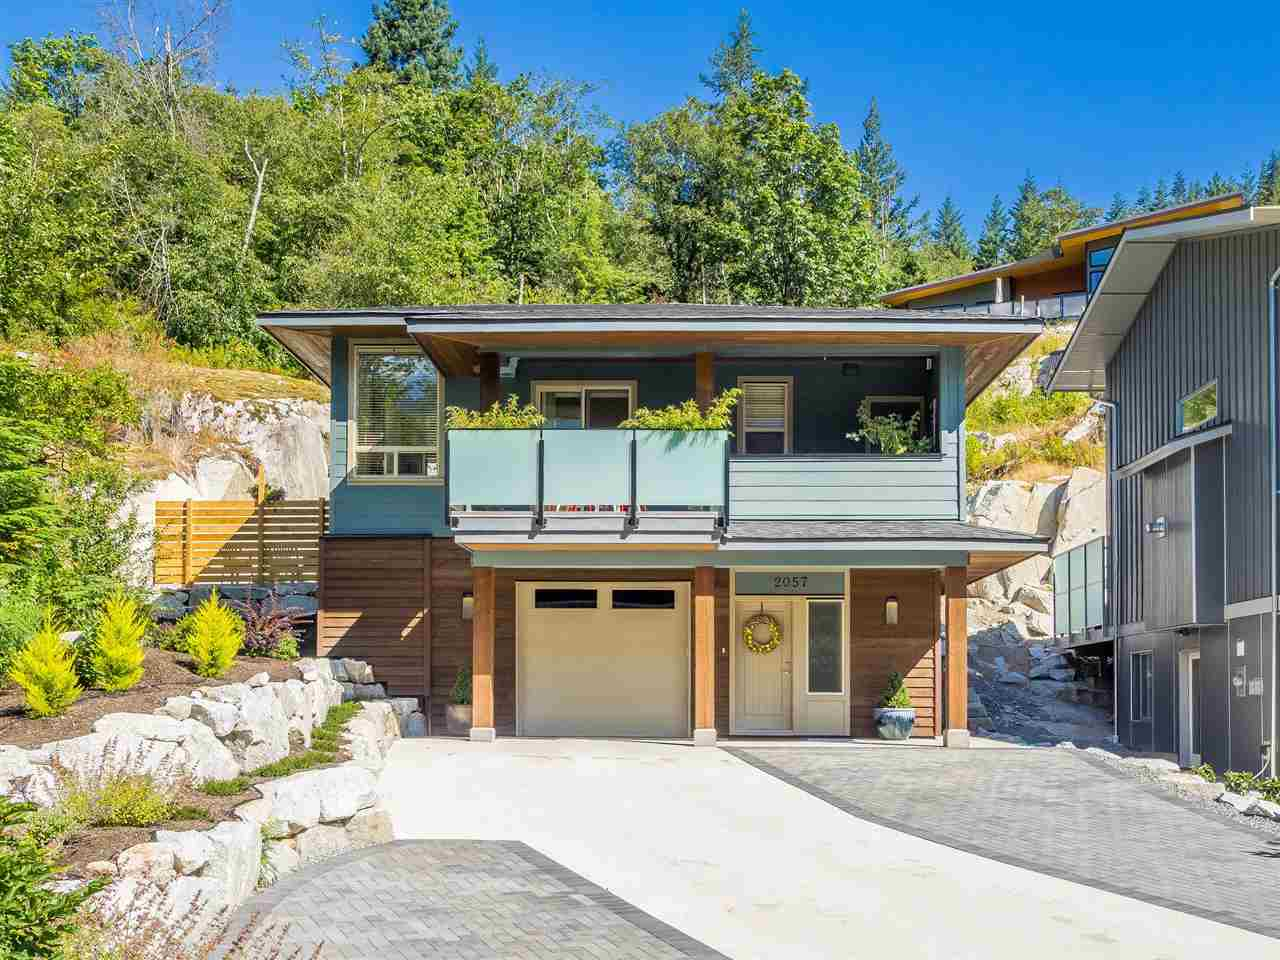 Brand new home found at the end of a cul-de-sac, adjacent to green space in the exclusive neighbourhood of Crumpit Woods. Large 11,126 sq ft lot w/ incredible views of The Chief off the front south facing covered deck w/ gas bbq hook-up. Beautiful & private back patio w/ fire pit and cascading waterfall running down a spectacular granite wall. Dble car garage w/ storage & RV parking in driveway. Incredible value in this home w/ rental revenue from modern, legal studio suite w/ own laundry, loft and outdoor space; 2 sets of appliances incl Fisher & Paykel s/s in main kitchen, 2 walk-in closets, 3 bdrms incl. 2 ensuites. Efficiency & comfort is key w/ on demand h/w system, n/g f/p, HRV & extra insulation for sound reduction. Call to view!